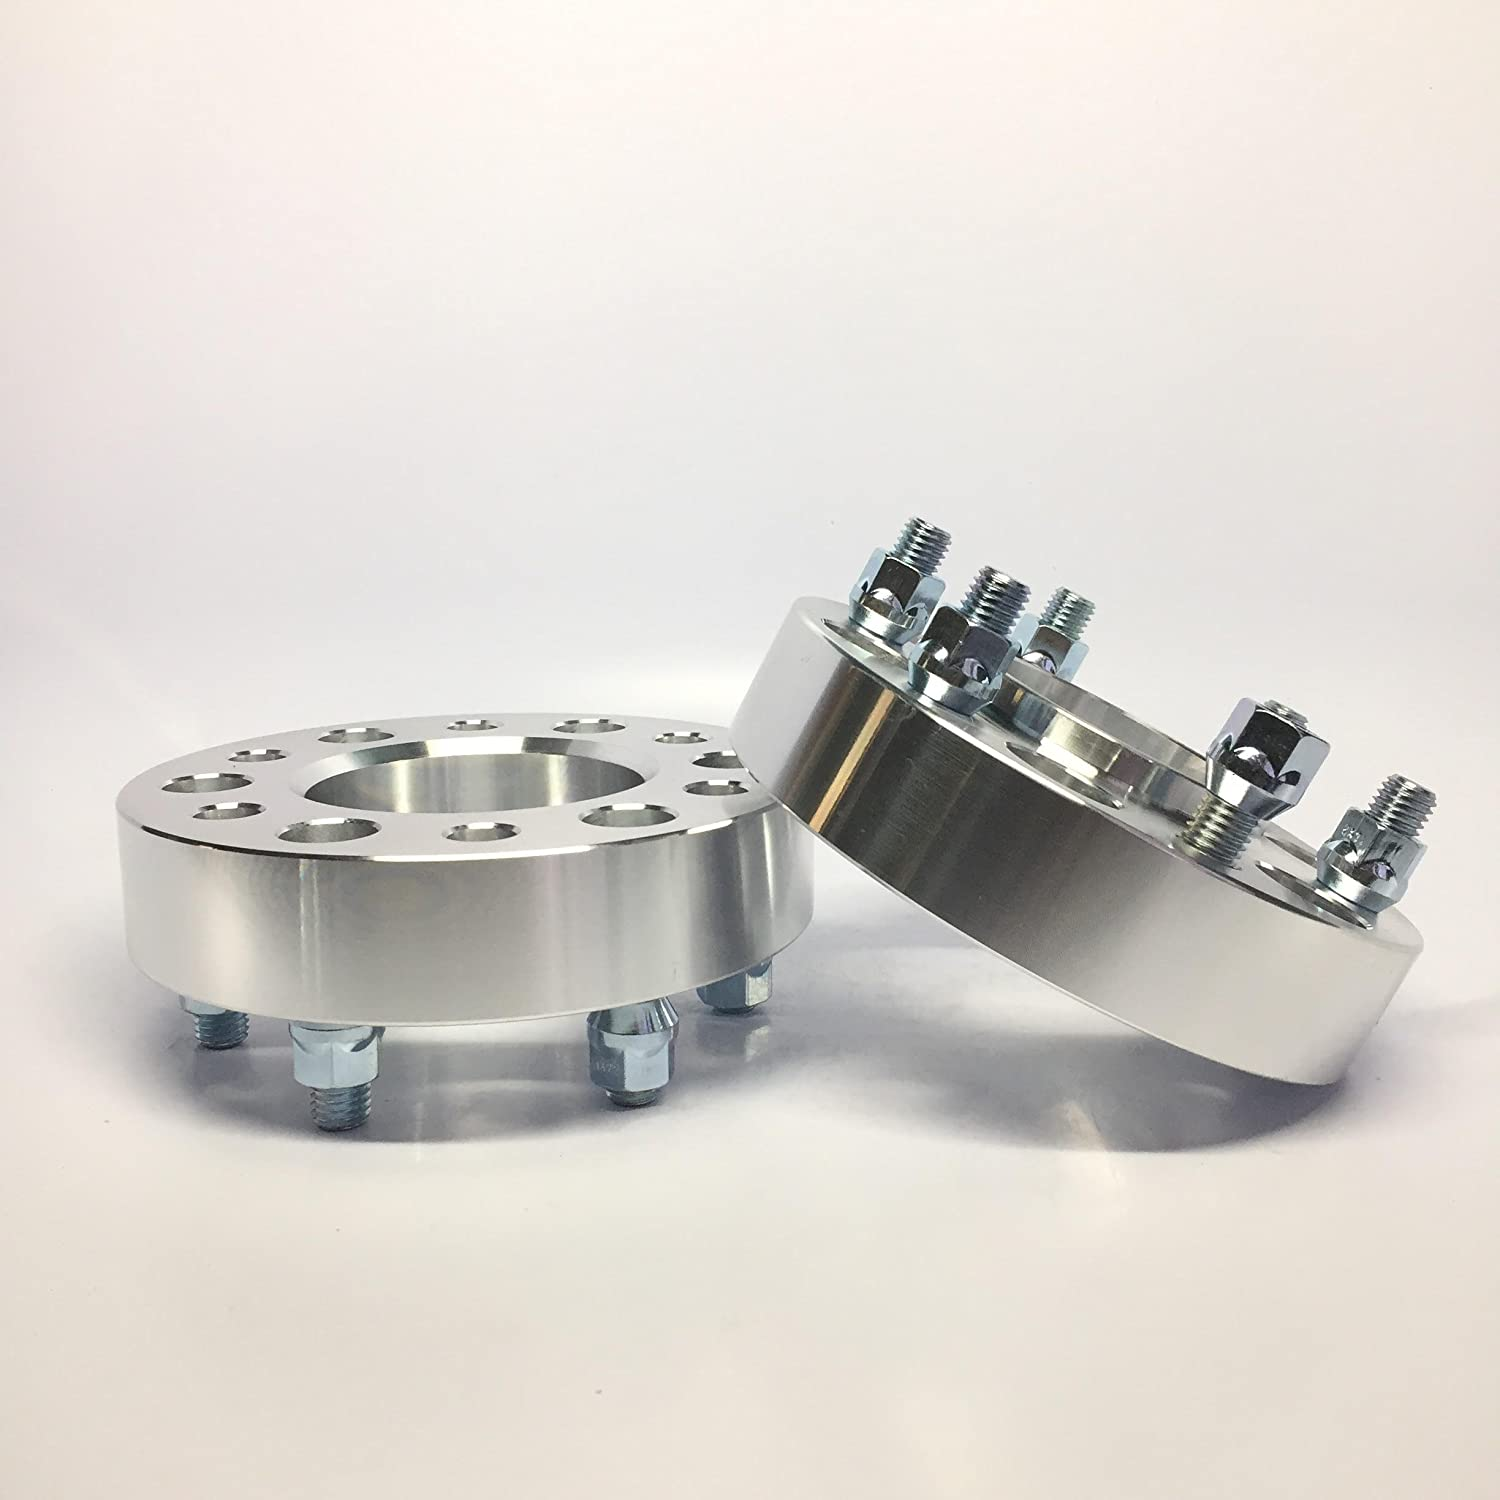 4 Pieces 2 50mm Lug Centric Wheel Spacers Bolt Pattern 5x5 to 5x5 5x127 Thread Pitch 1//2 Studs Center Bore 78.3mm Center Bore